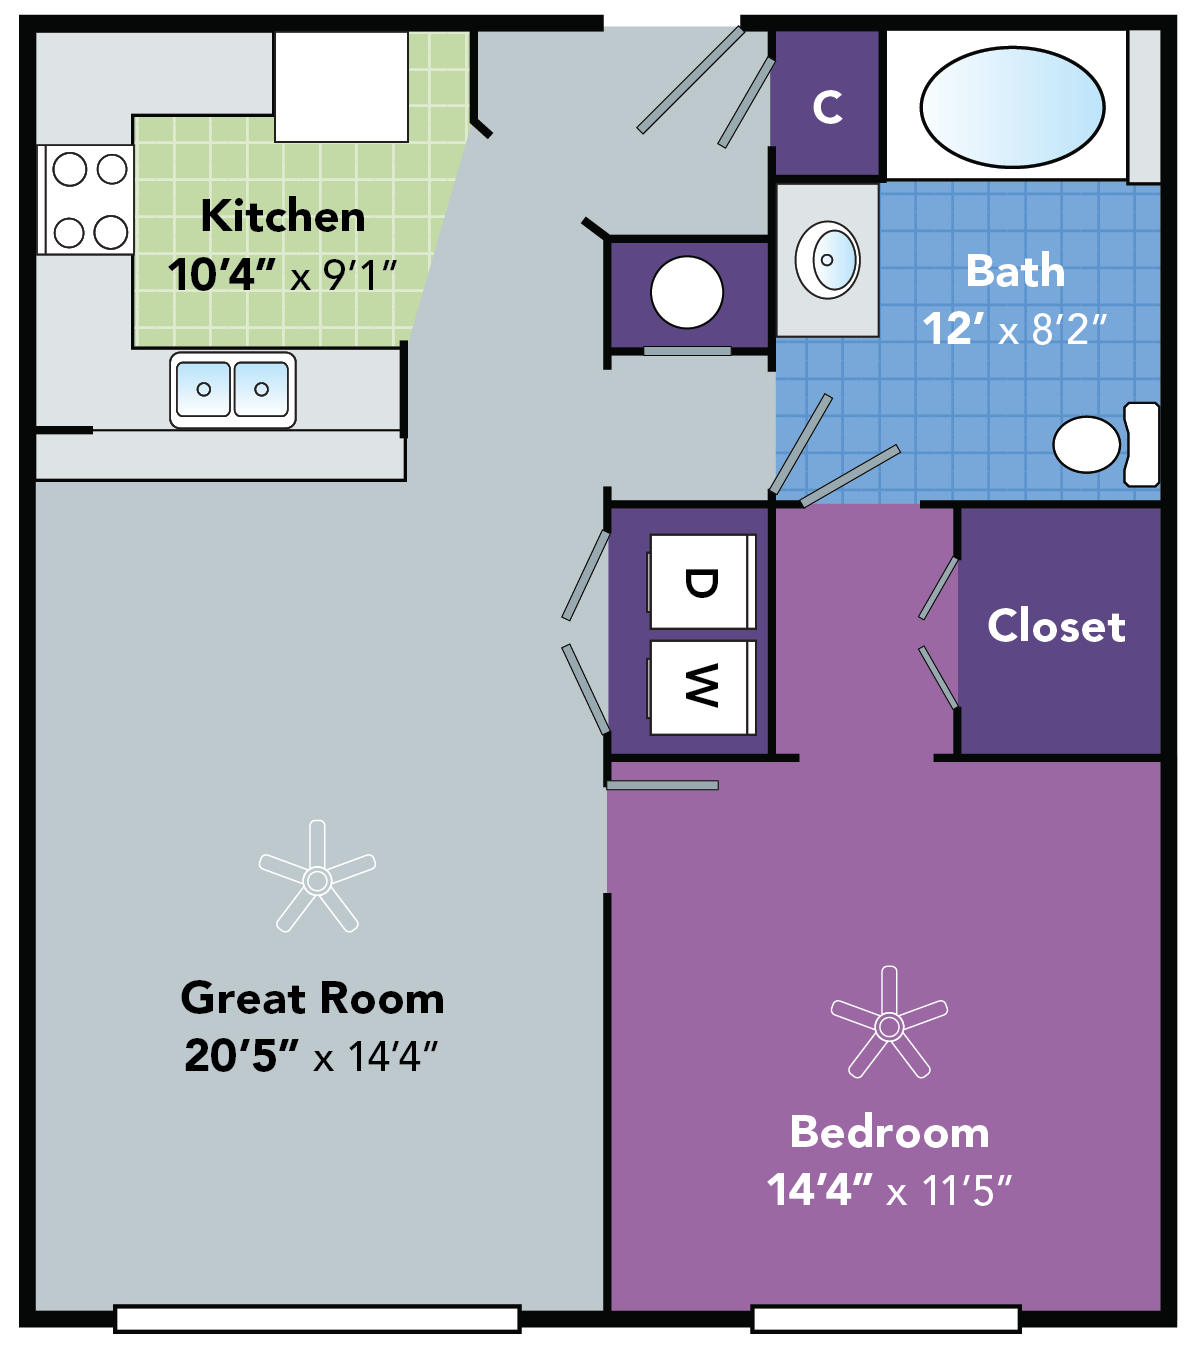 One Bedroom Apartments in Fayetteville, NC - Stone Ridge Apts - Riley FP